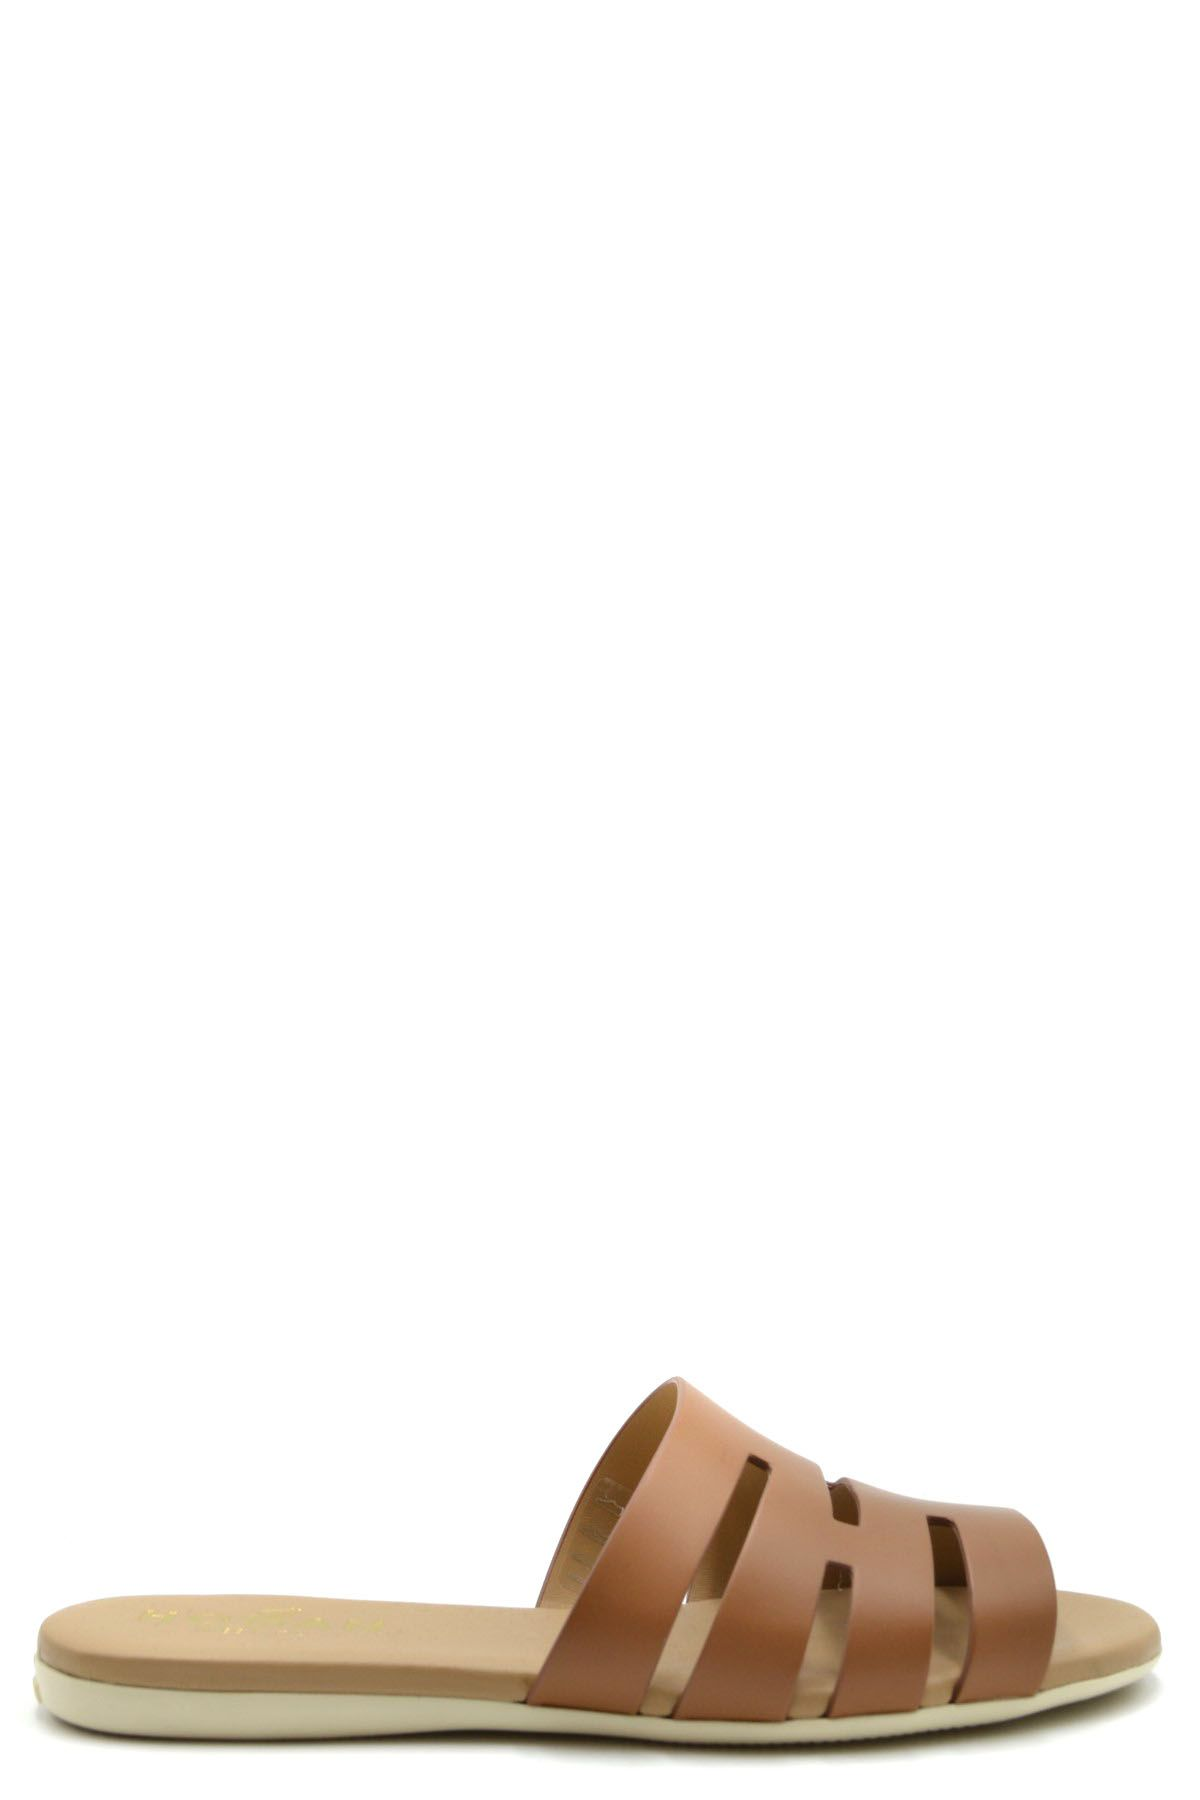 Hogan Women's Genuine Leather Slippers Sandals Valencia In Brown